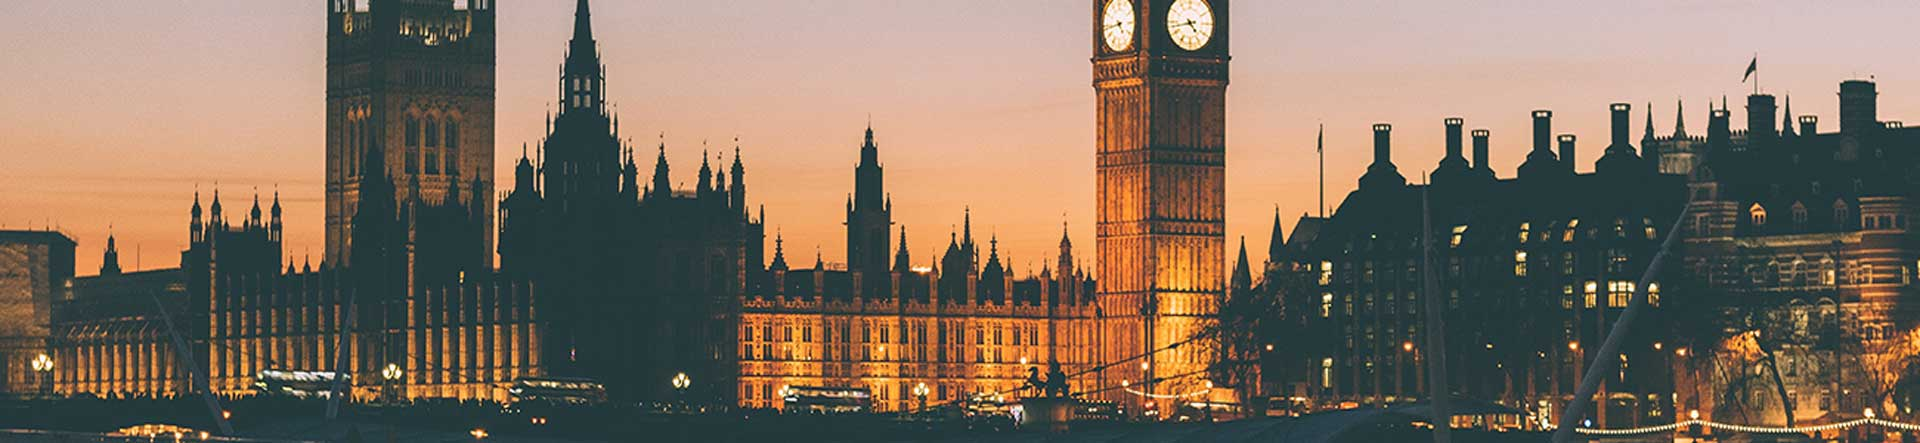 banner-london-house-of-parliament-englisch-abitur